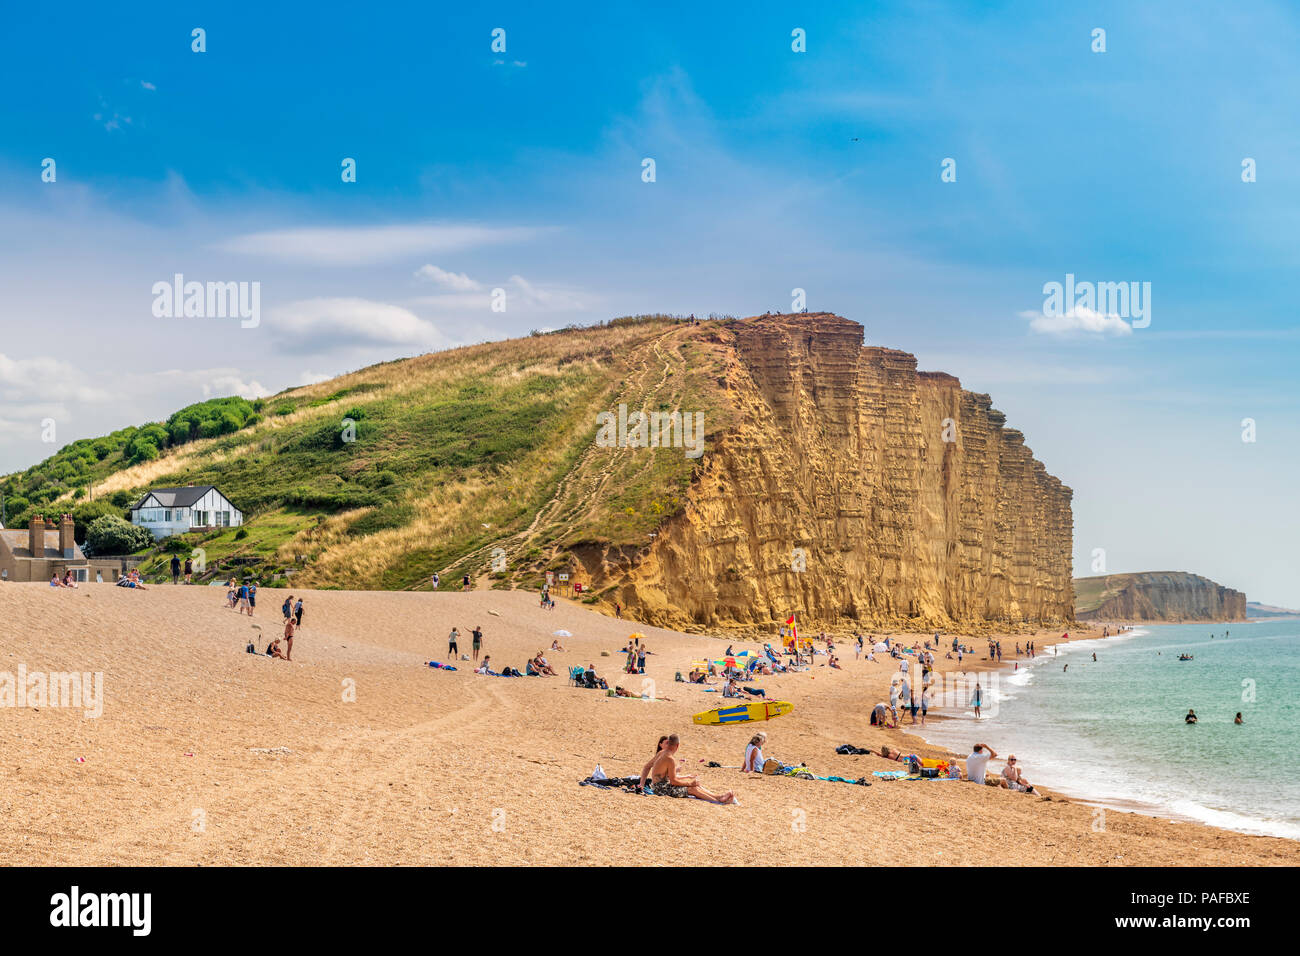 The famous landmark cliff at West Bay in Dorset, made famous by the television series 'Broadchurch'. Stock Photo